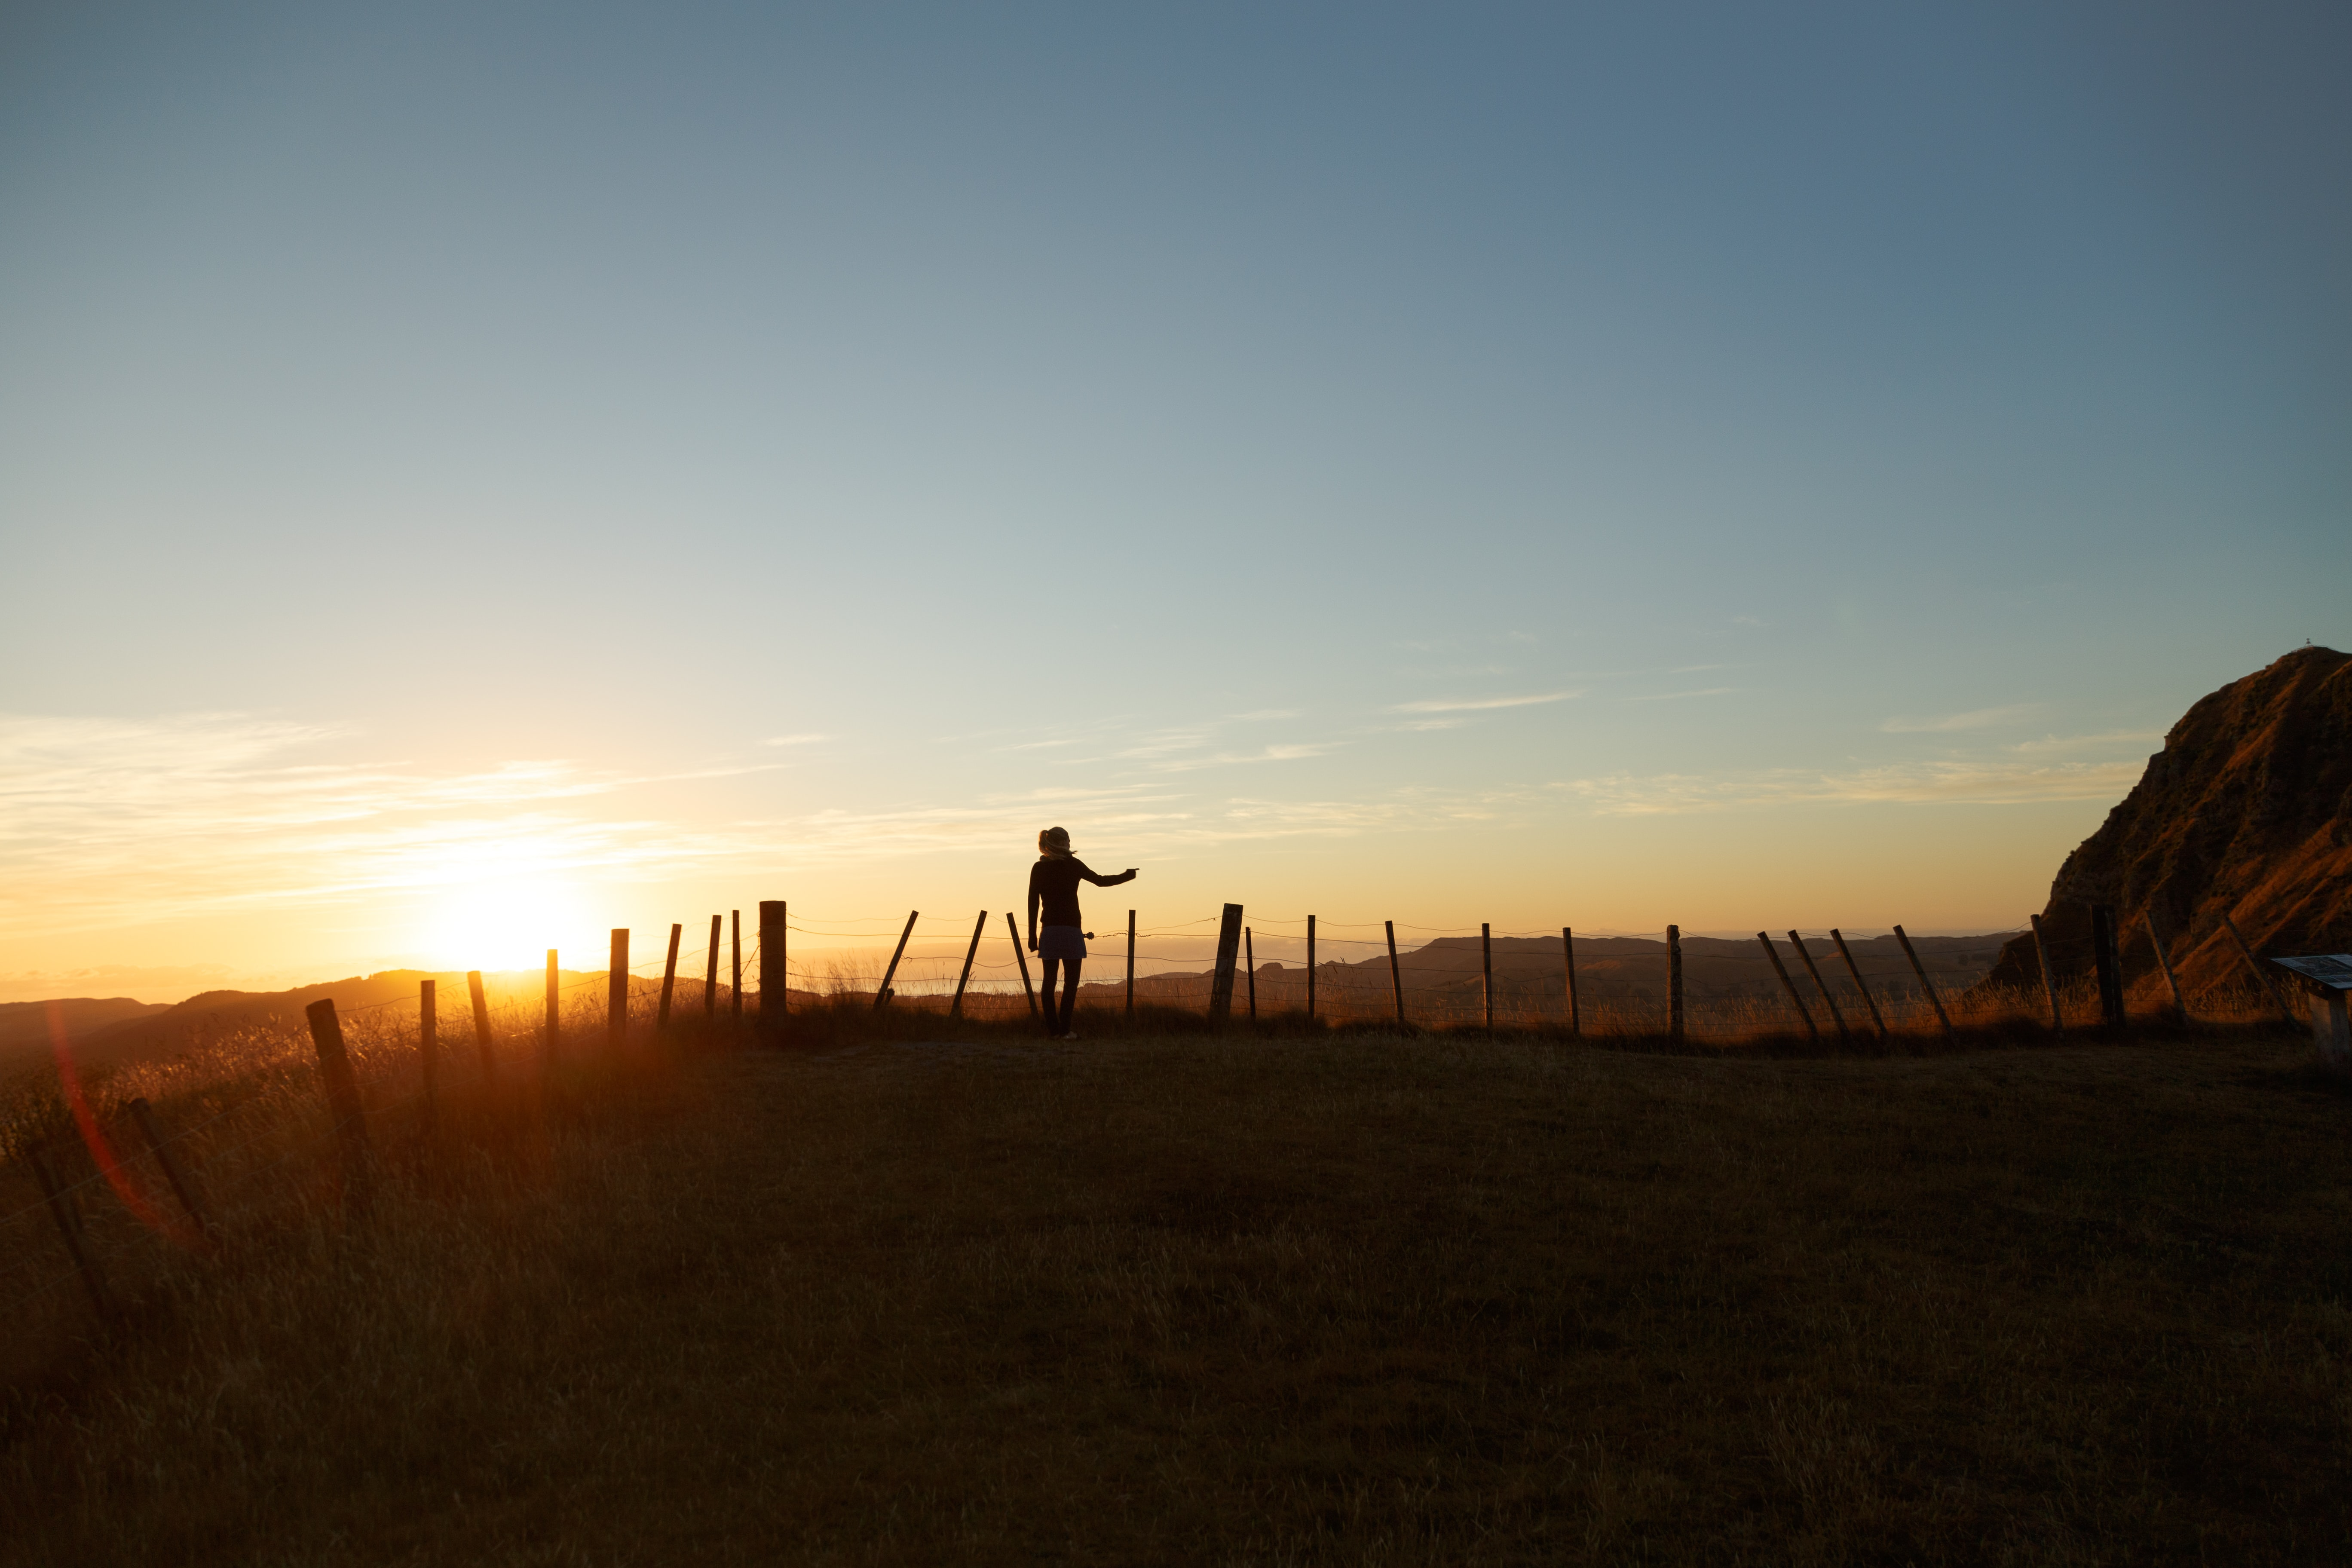 A silhouette of a woman extending her hand next to a wire fence during sunset